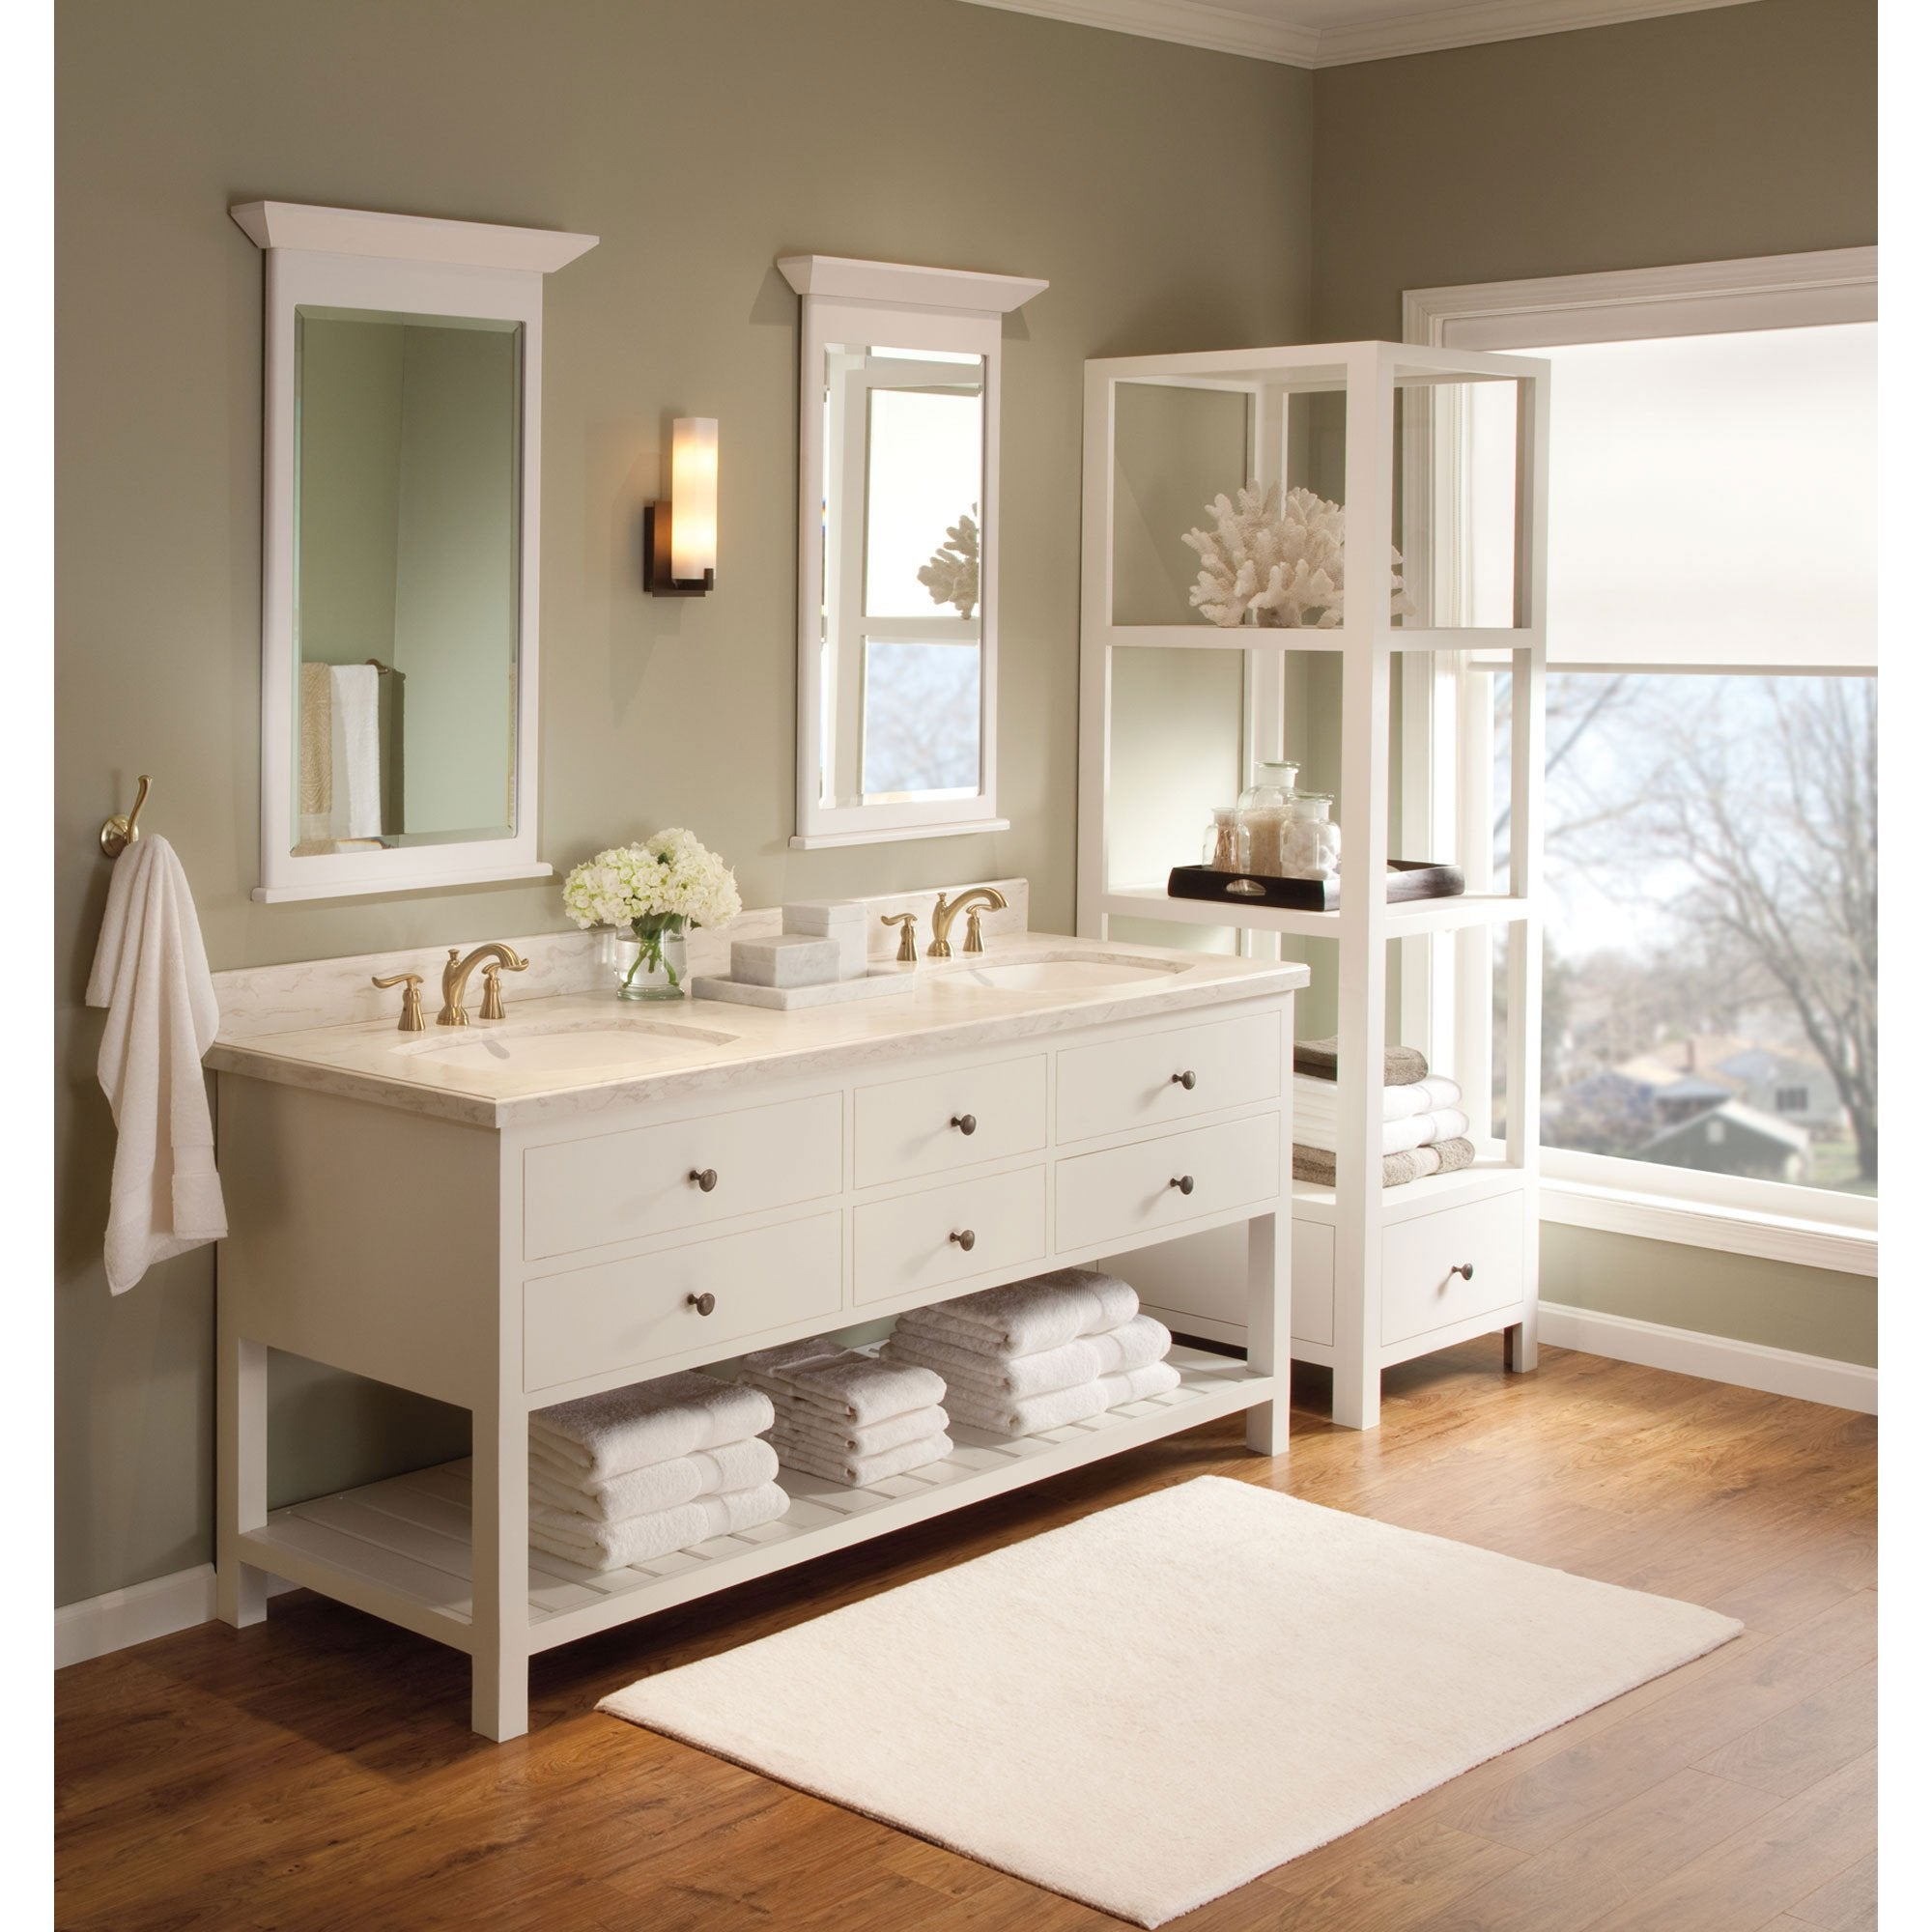 Gentil Delta Champagne Bronze Finish Linden Collection QUANTITY (2) Widespread  Bathroom Sink Faucets And Robe